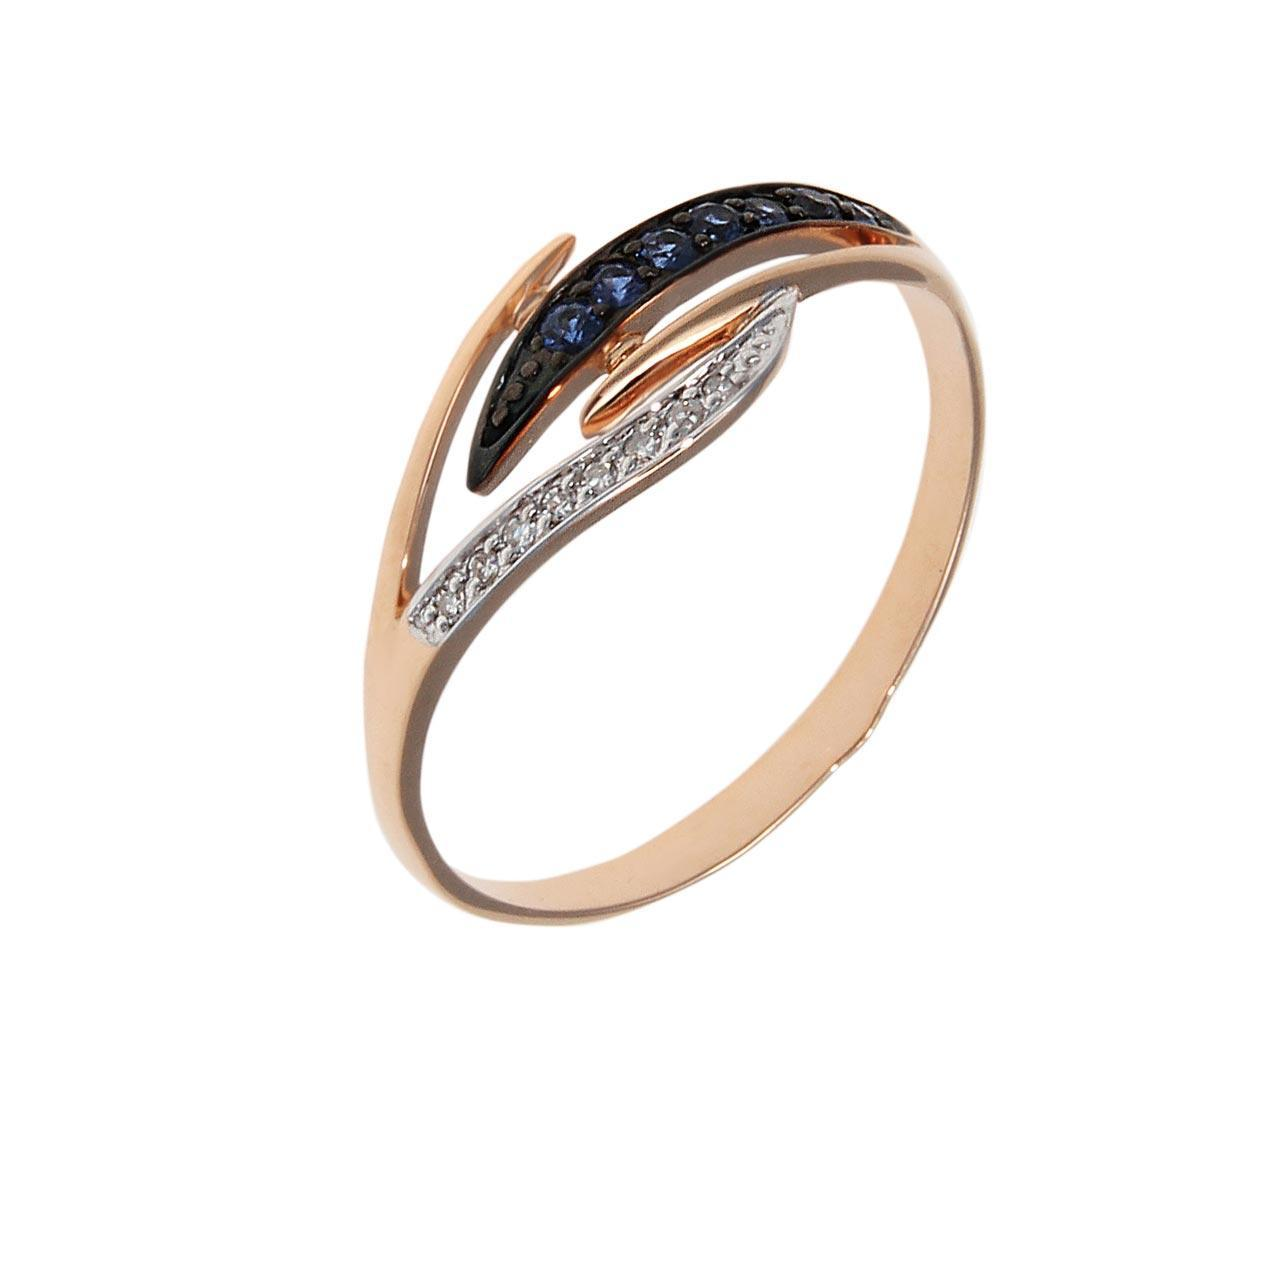 Diamond and Sapphire Eclectic Ring